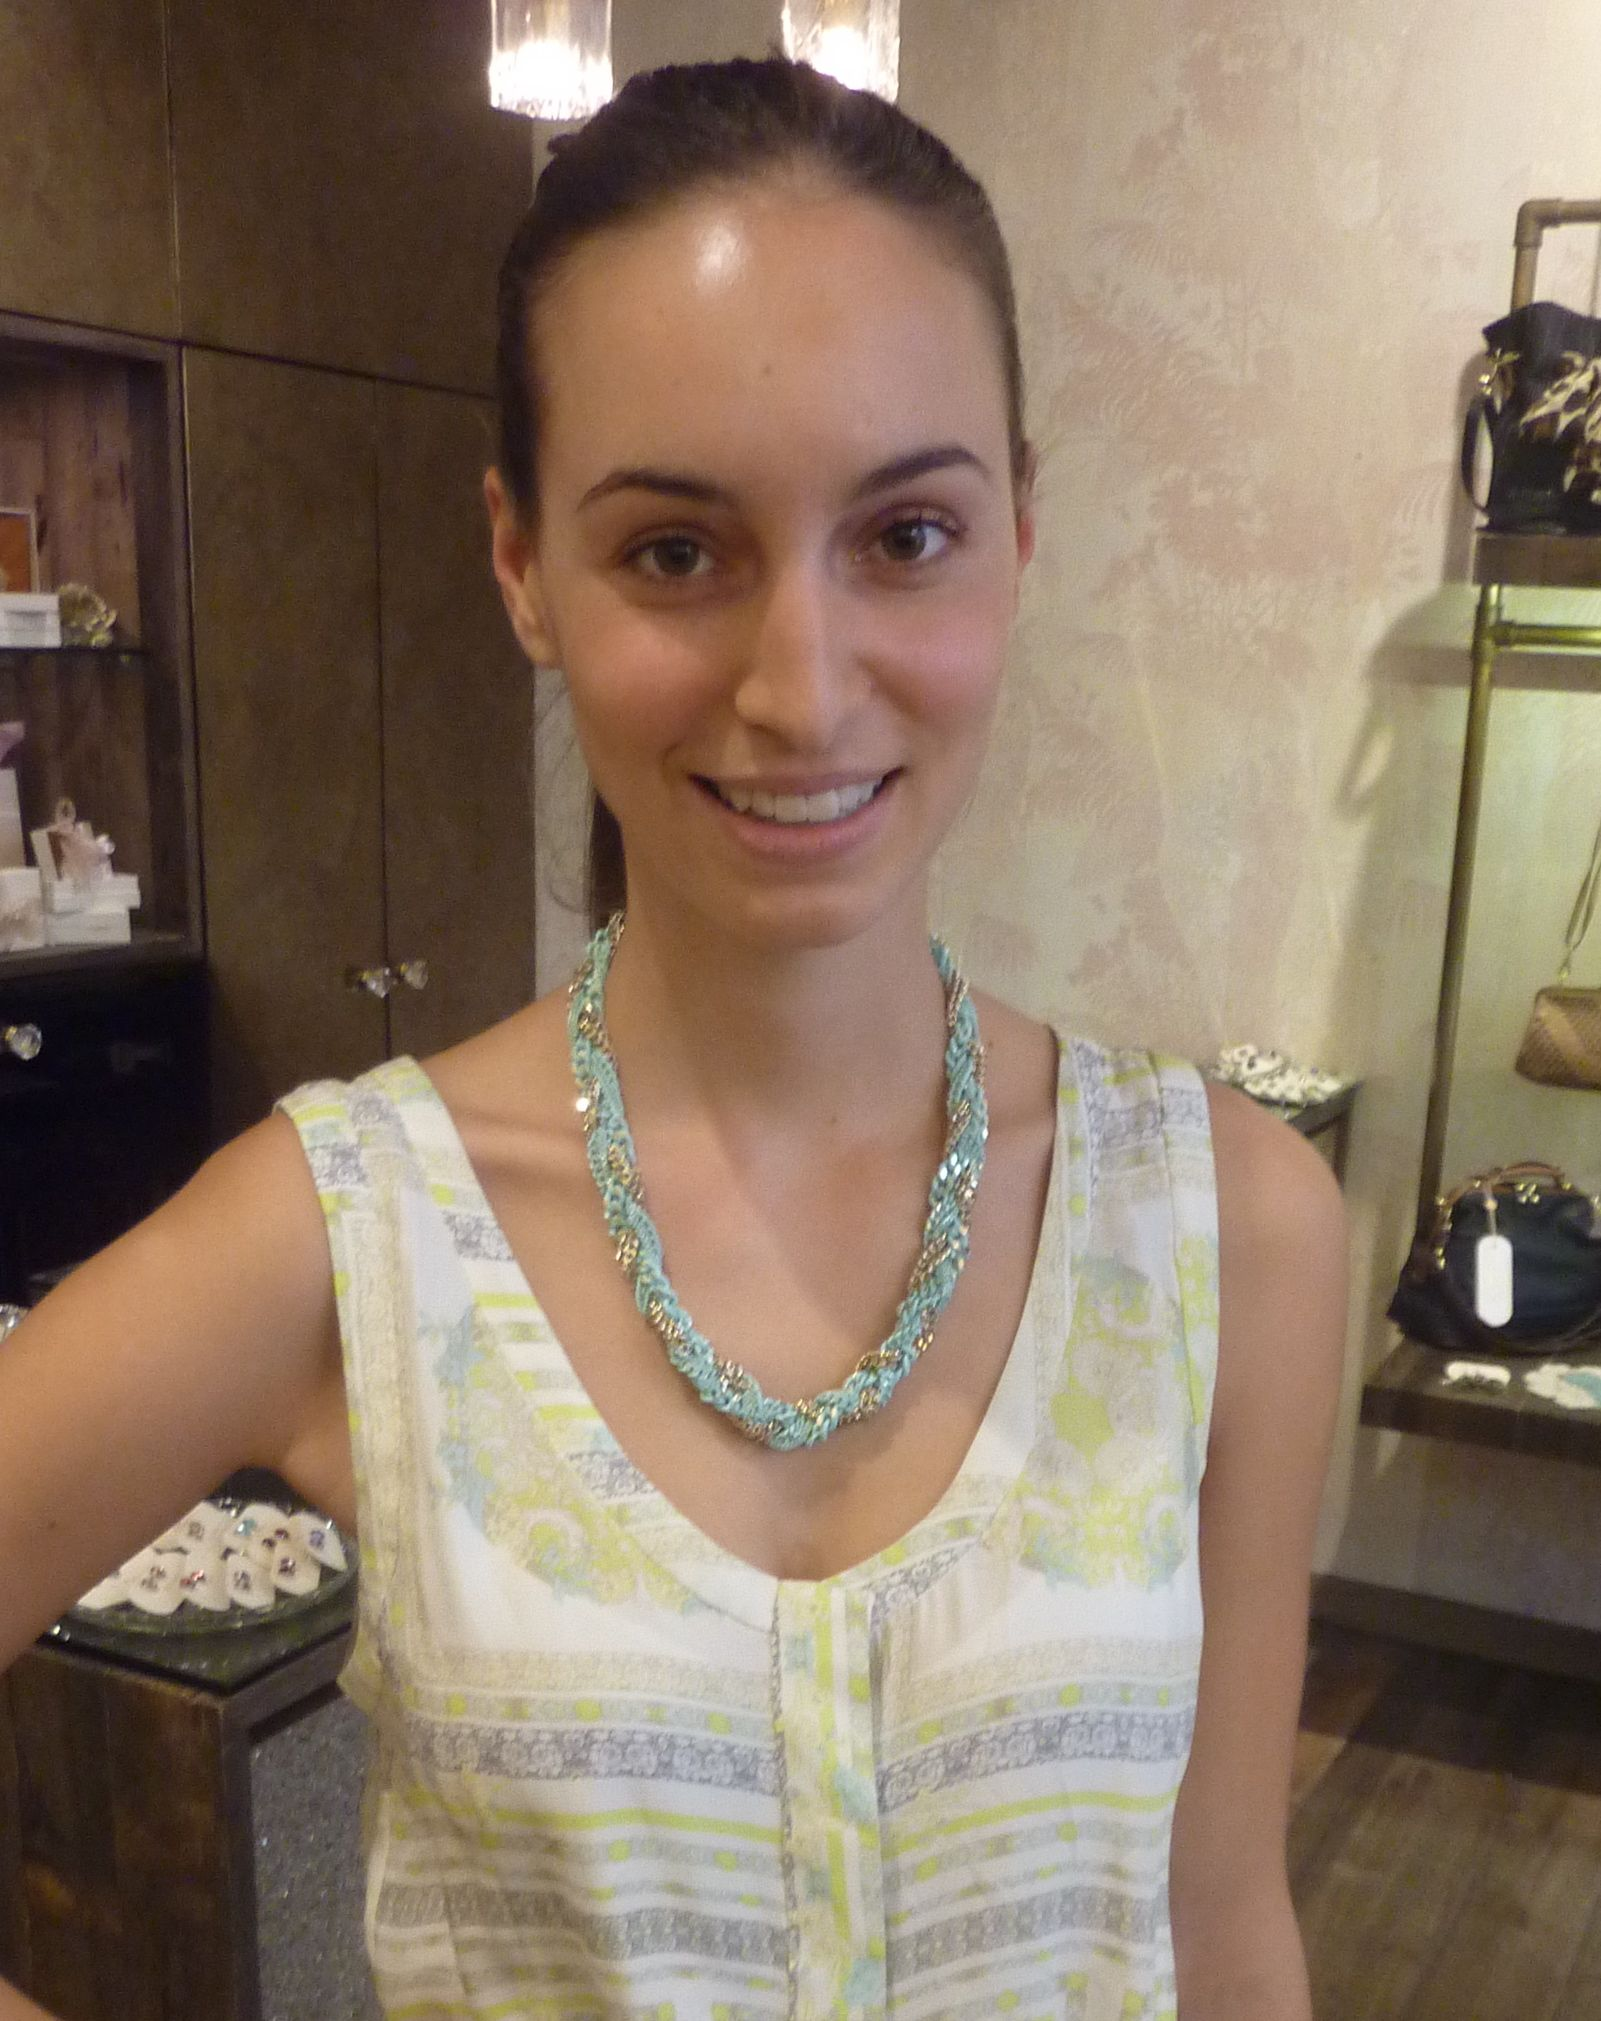 Alana, who works at Tilkah, wore the Ripple Effect necklace in mint - $79